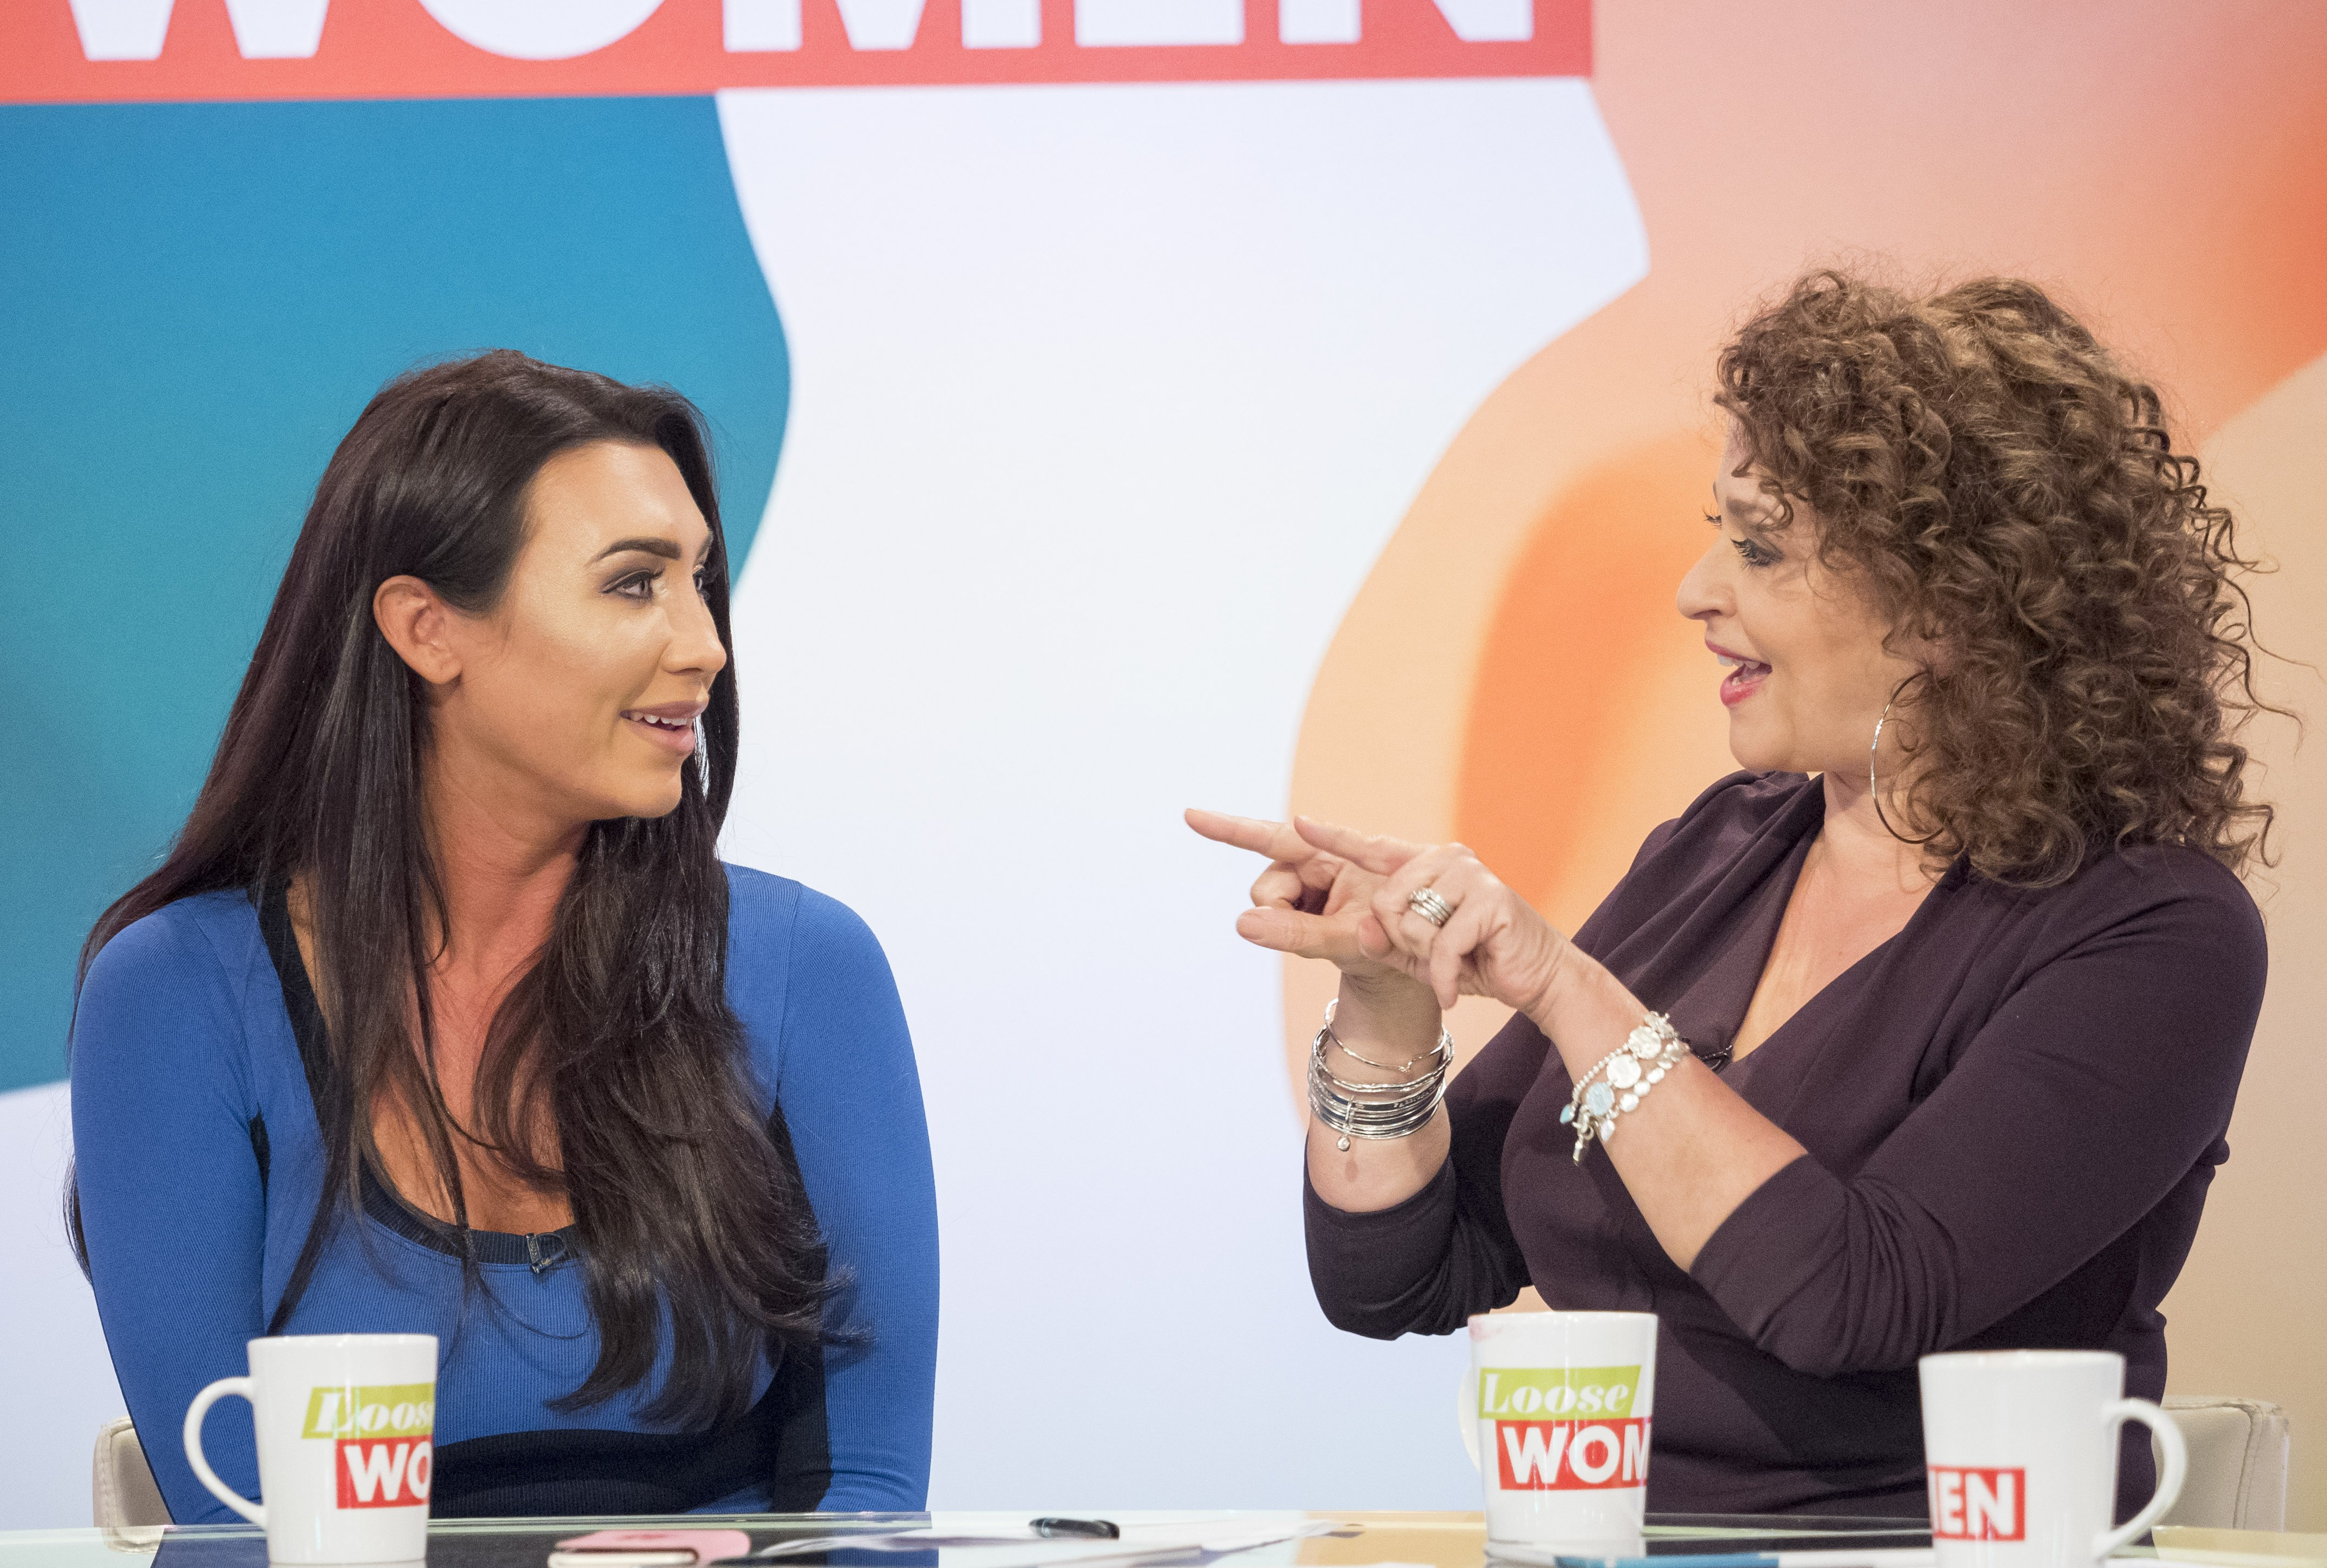 Awkward! Lauren Goodger asked if Michelle Keegan inspired her to lose weight on Loose Women